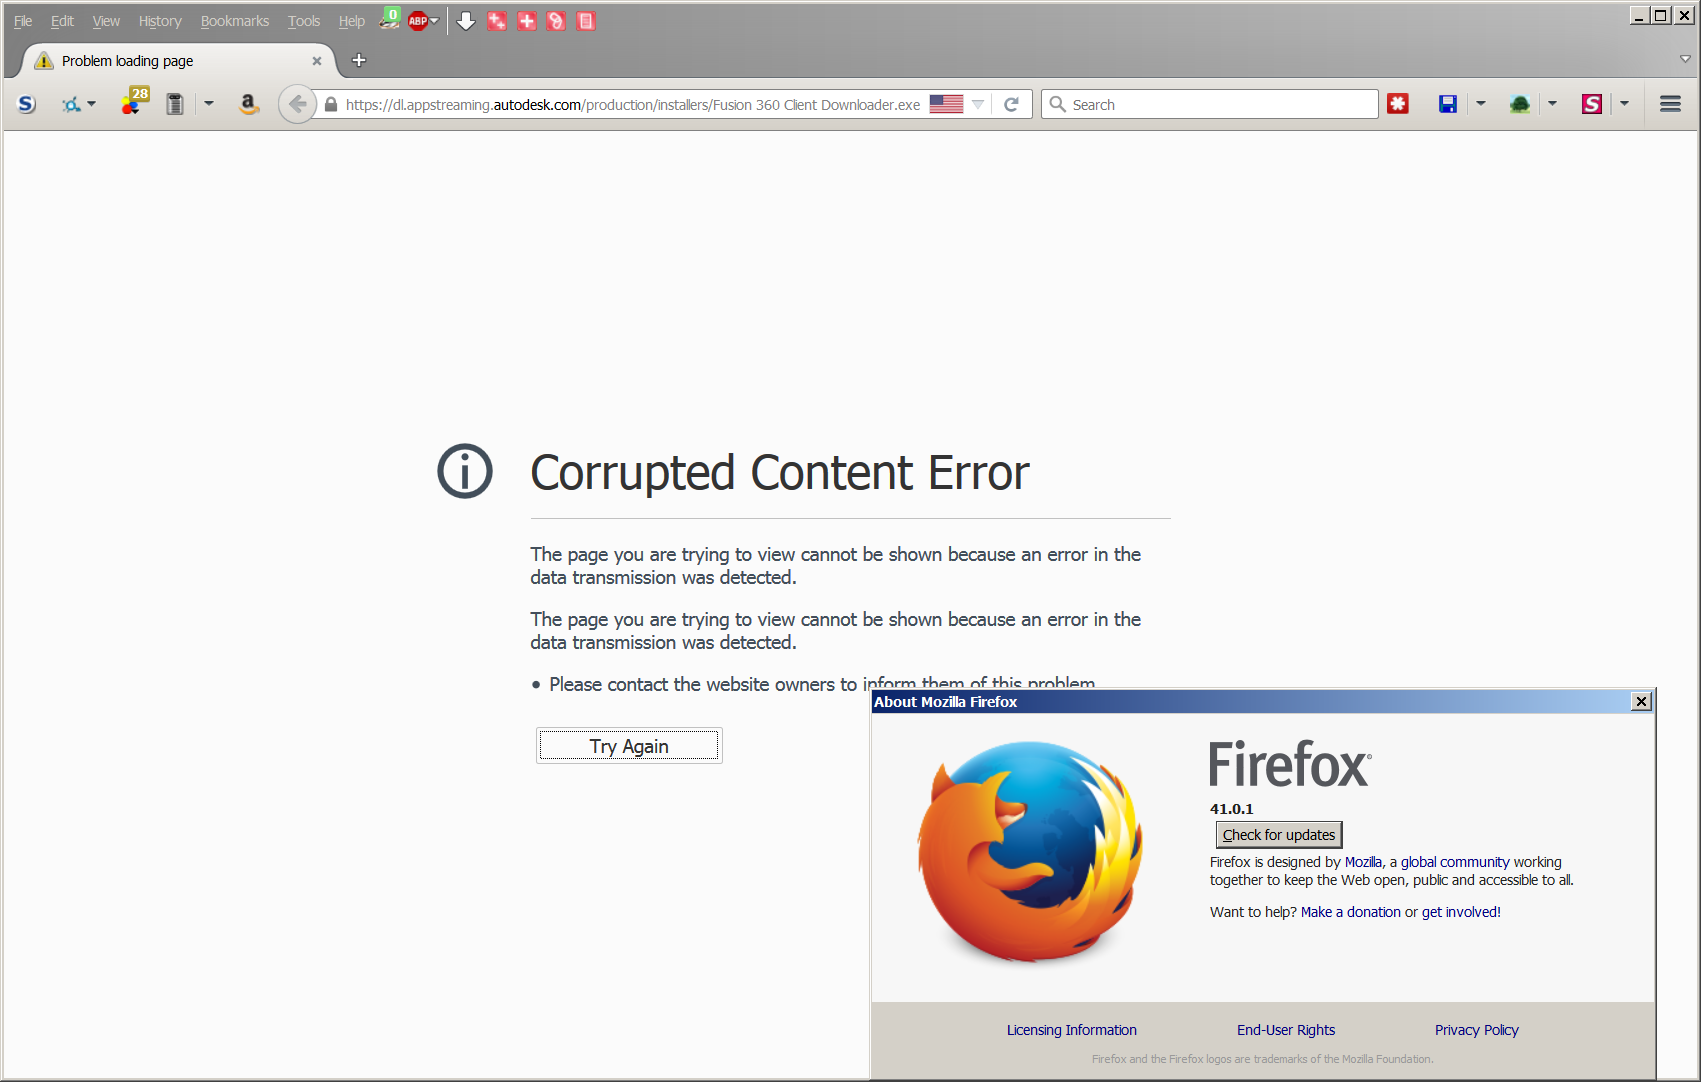 Firefox & Pale Moon say the connection is corrupt